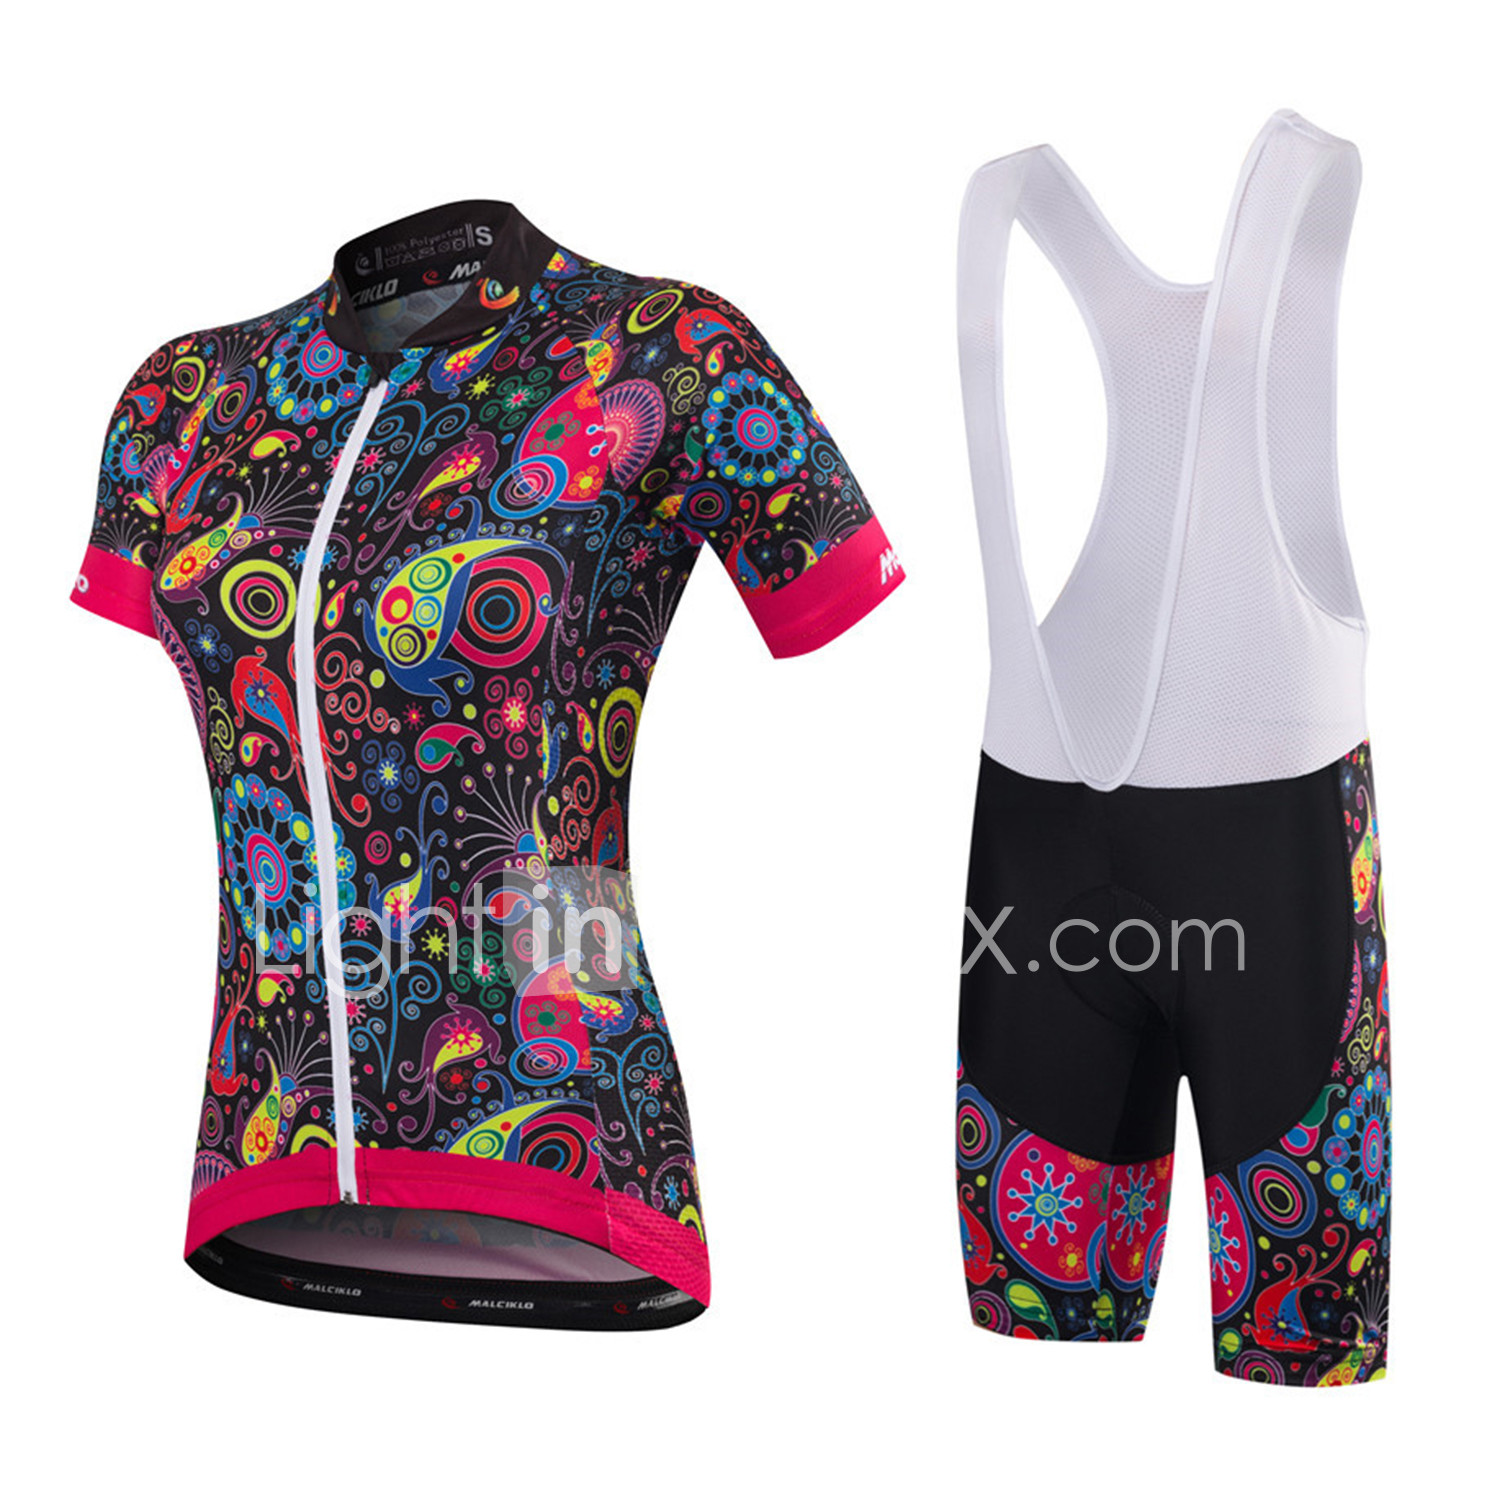 afffd204ab6 Malciklo Women s Short Sleeve Cycling Jersey with Bib Shorts - White Black  Floral   Botanical Plus Size Bike Clothing Suit Breathable 3D Pad Quick Dry  ...